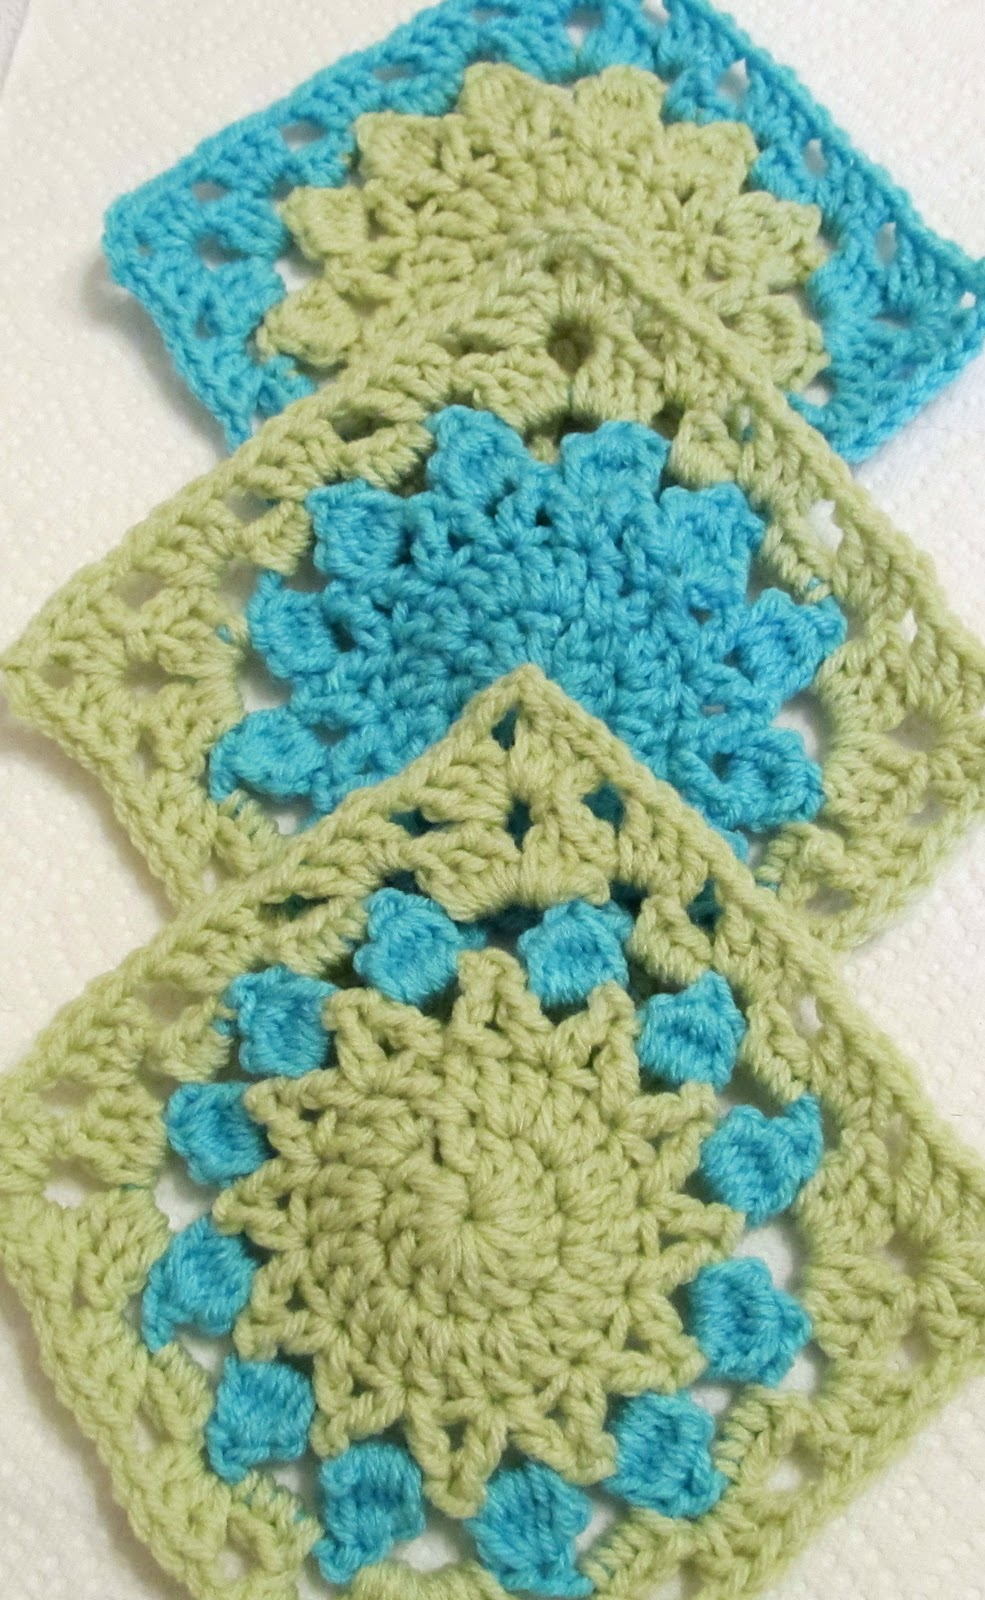 CROCHET CHARITY PATTERNS ? Free Patterns